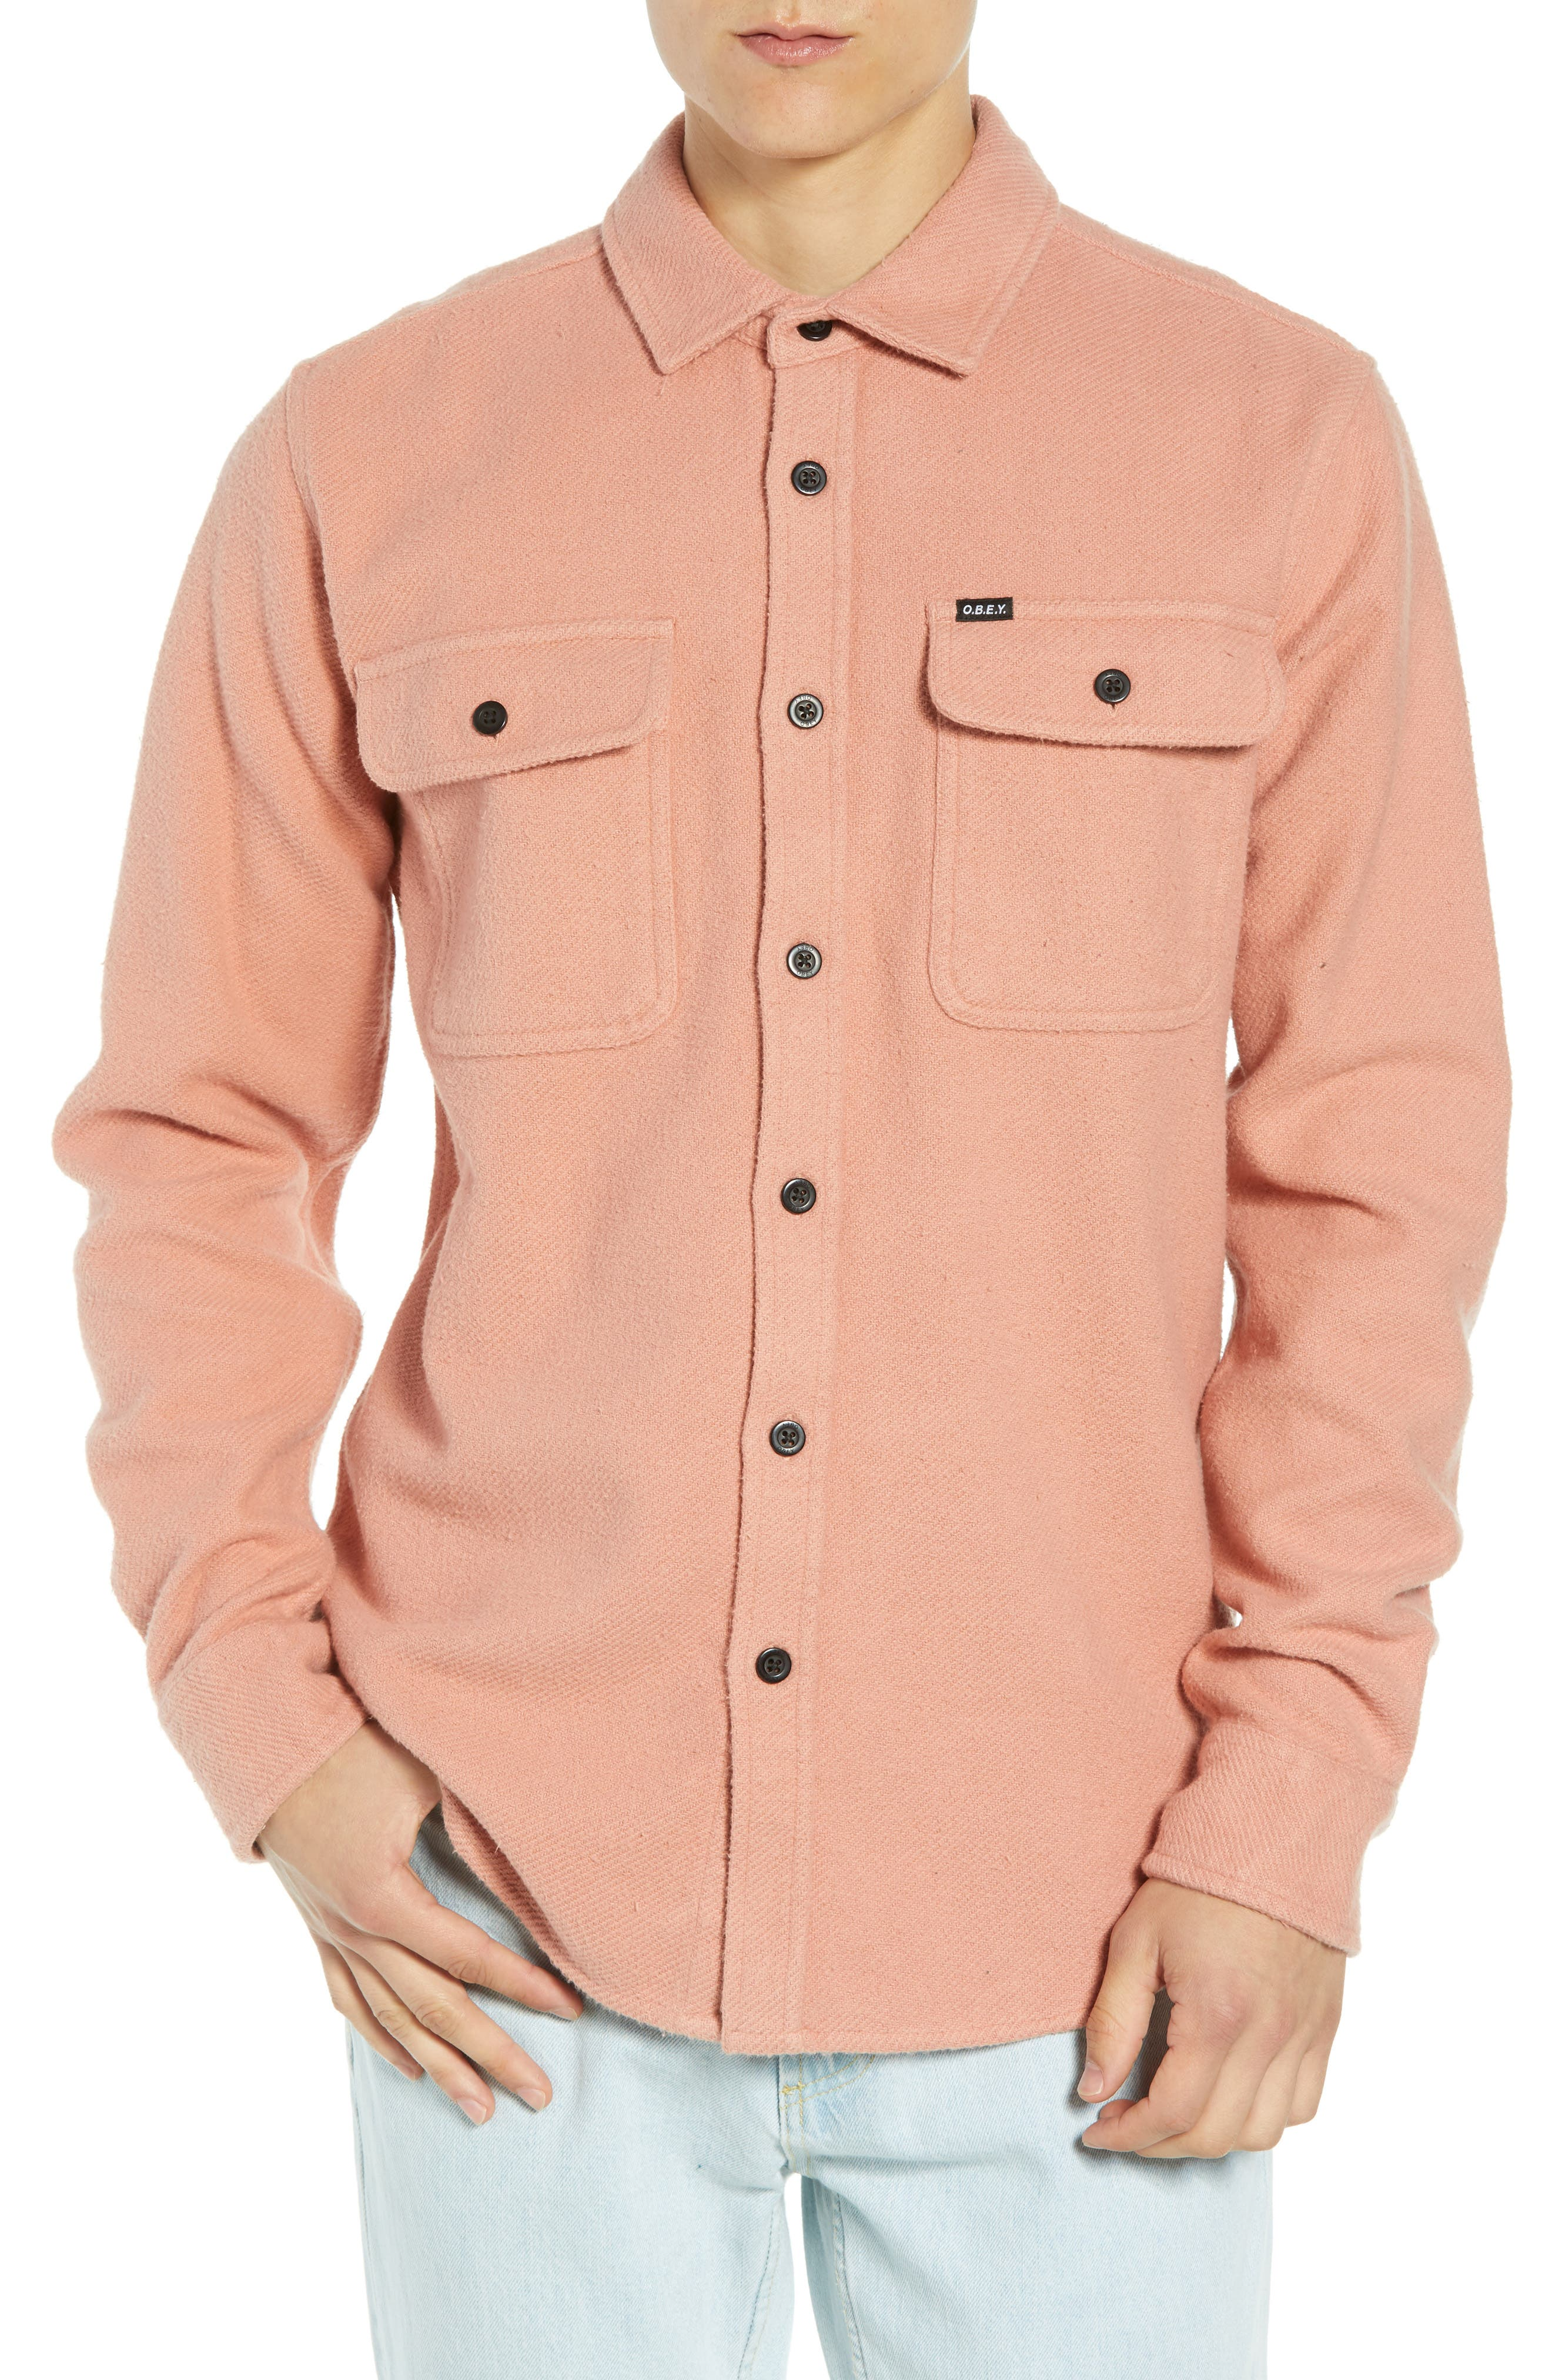 Outpost Flannel Shirt Jacket,                         Main,                         color, ROSE